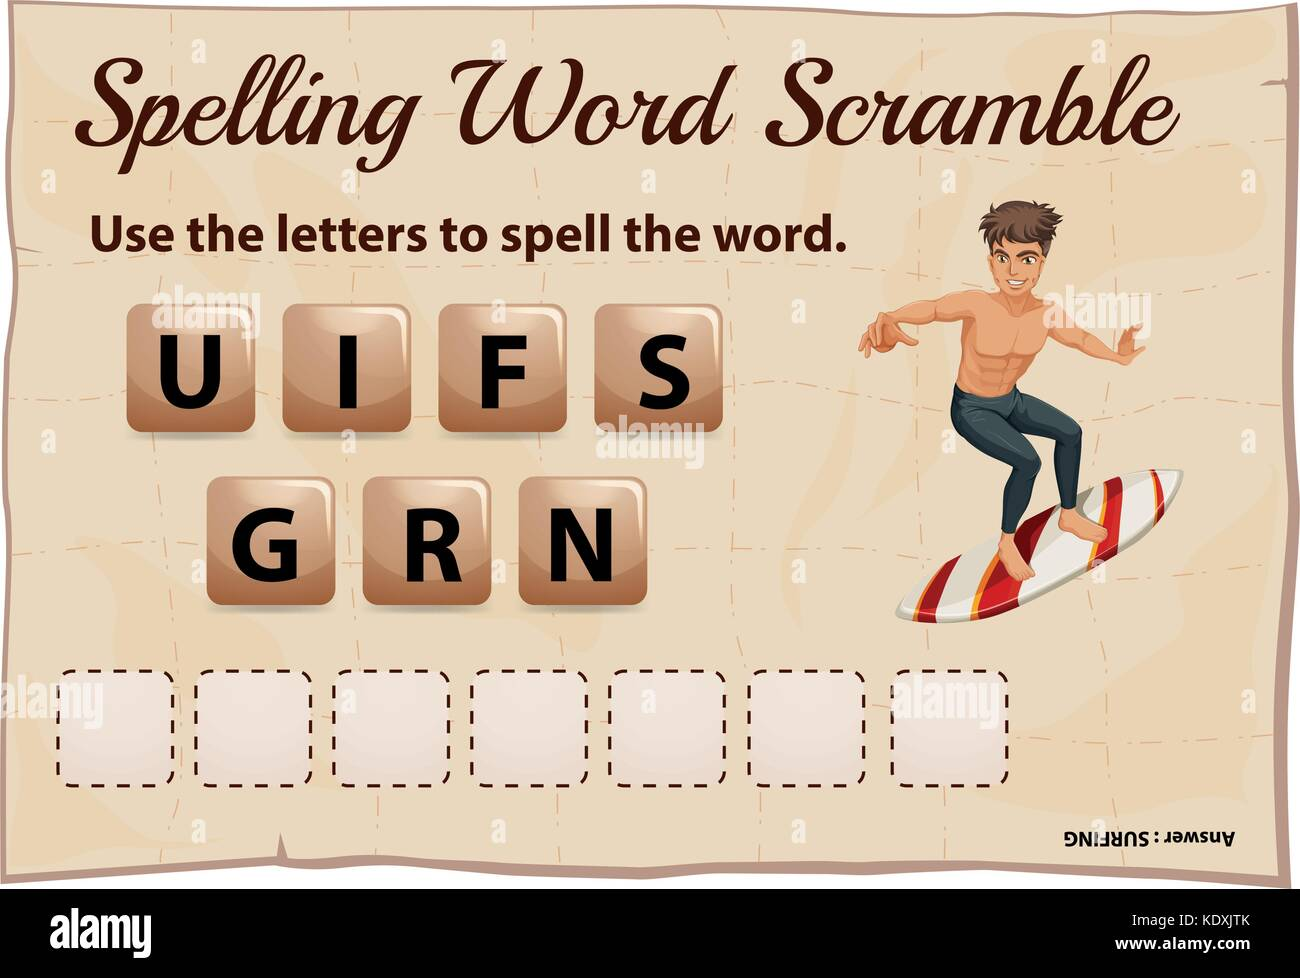 Spelling word scramble for word surfing illustration - Stock Vector